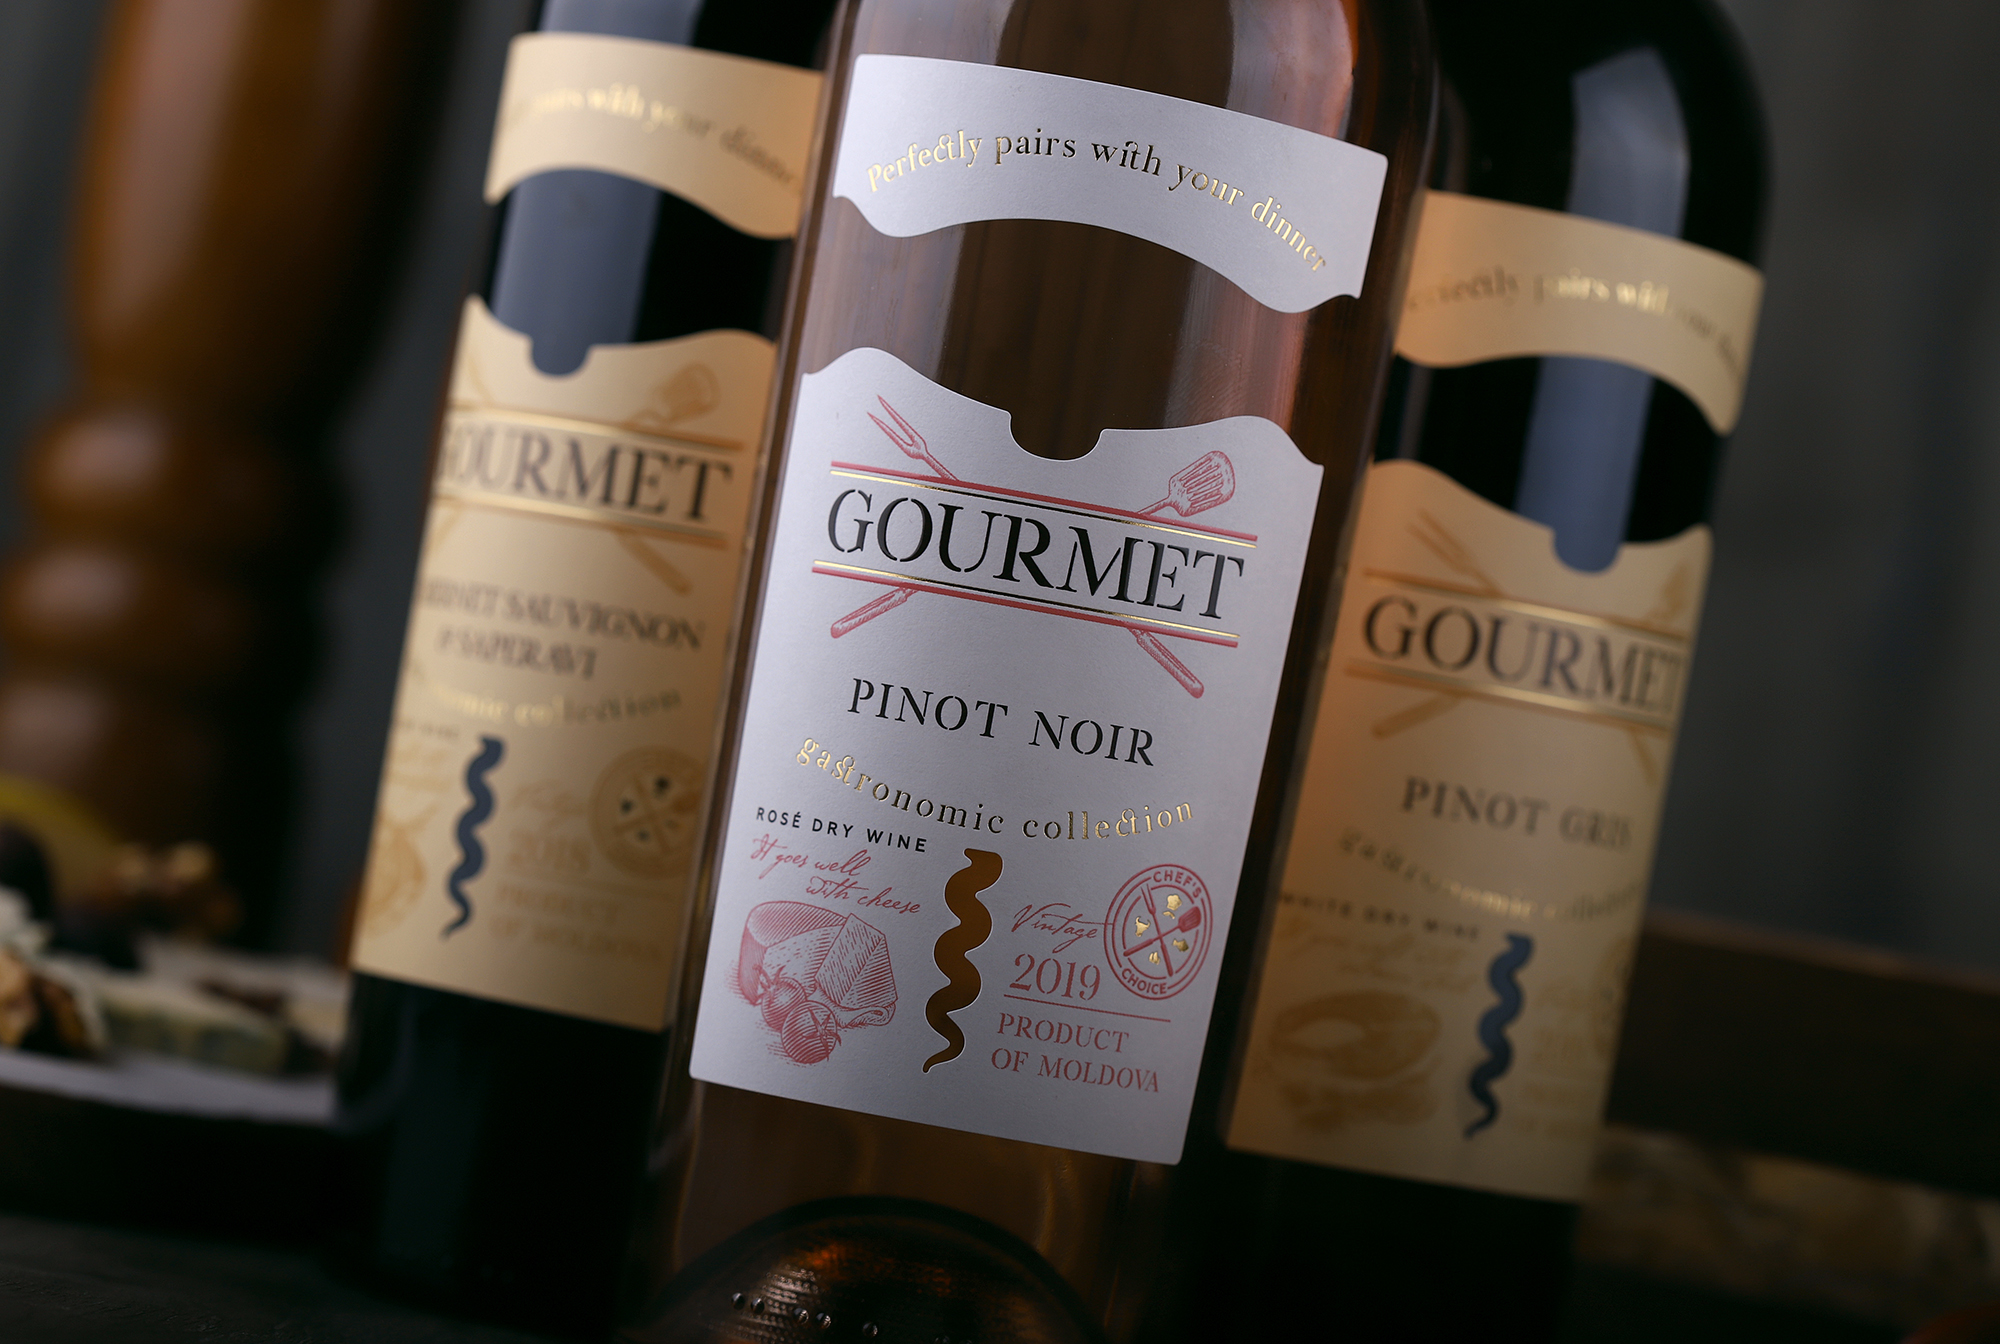 Redesign Gourmet Gastronomic Wine Collection